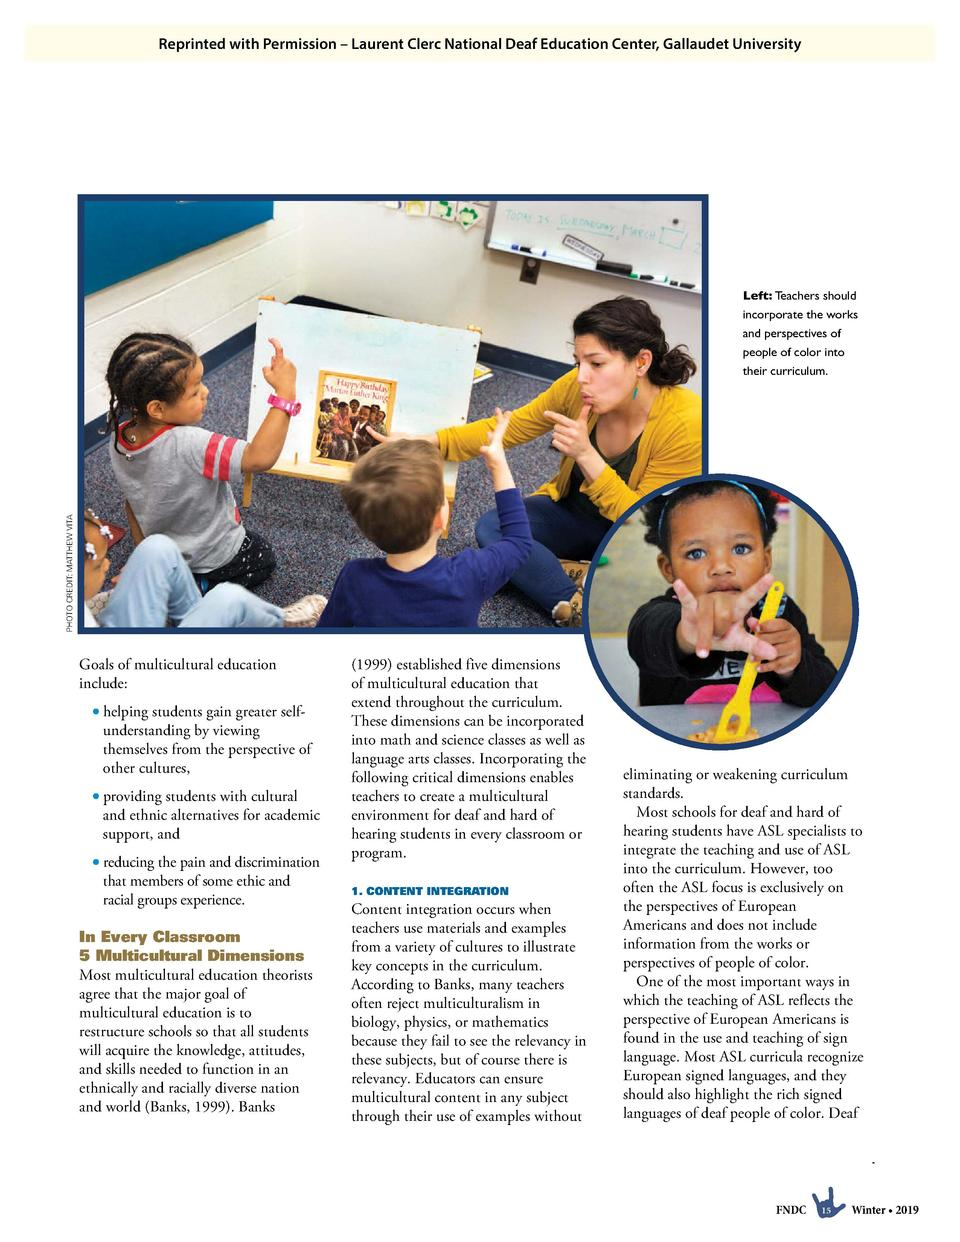 Reprinted with Permission     Laurent Clerc National Deaf Education Center, Gallaudet University  PHOTO CREDIT  MATTHEW VI...